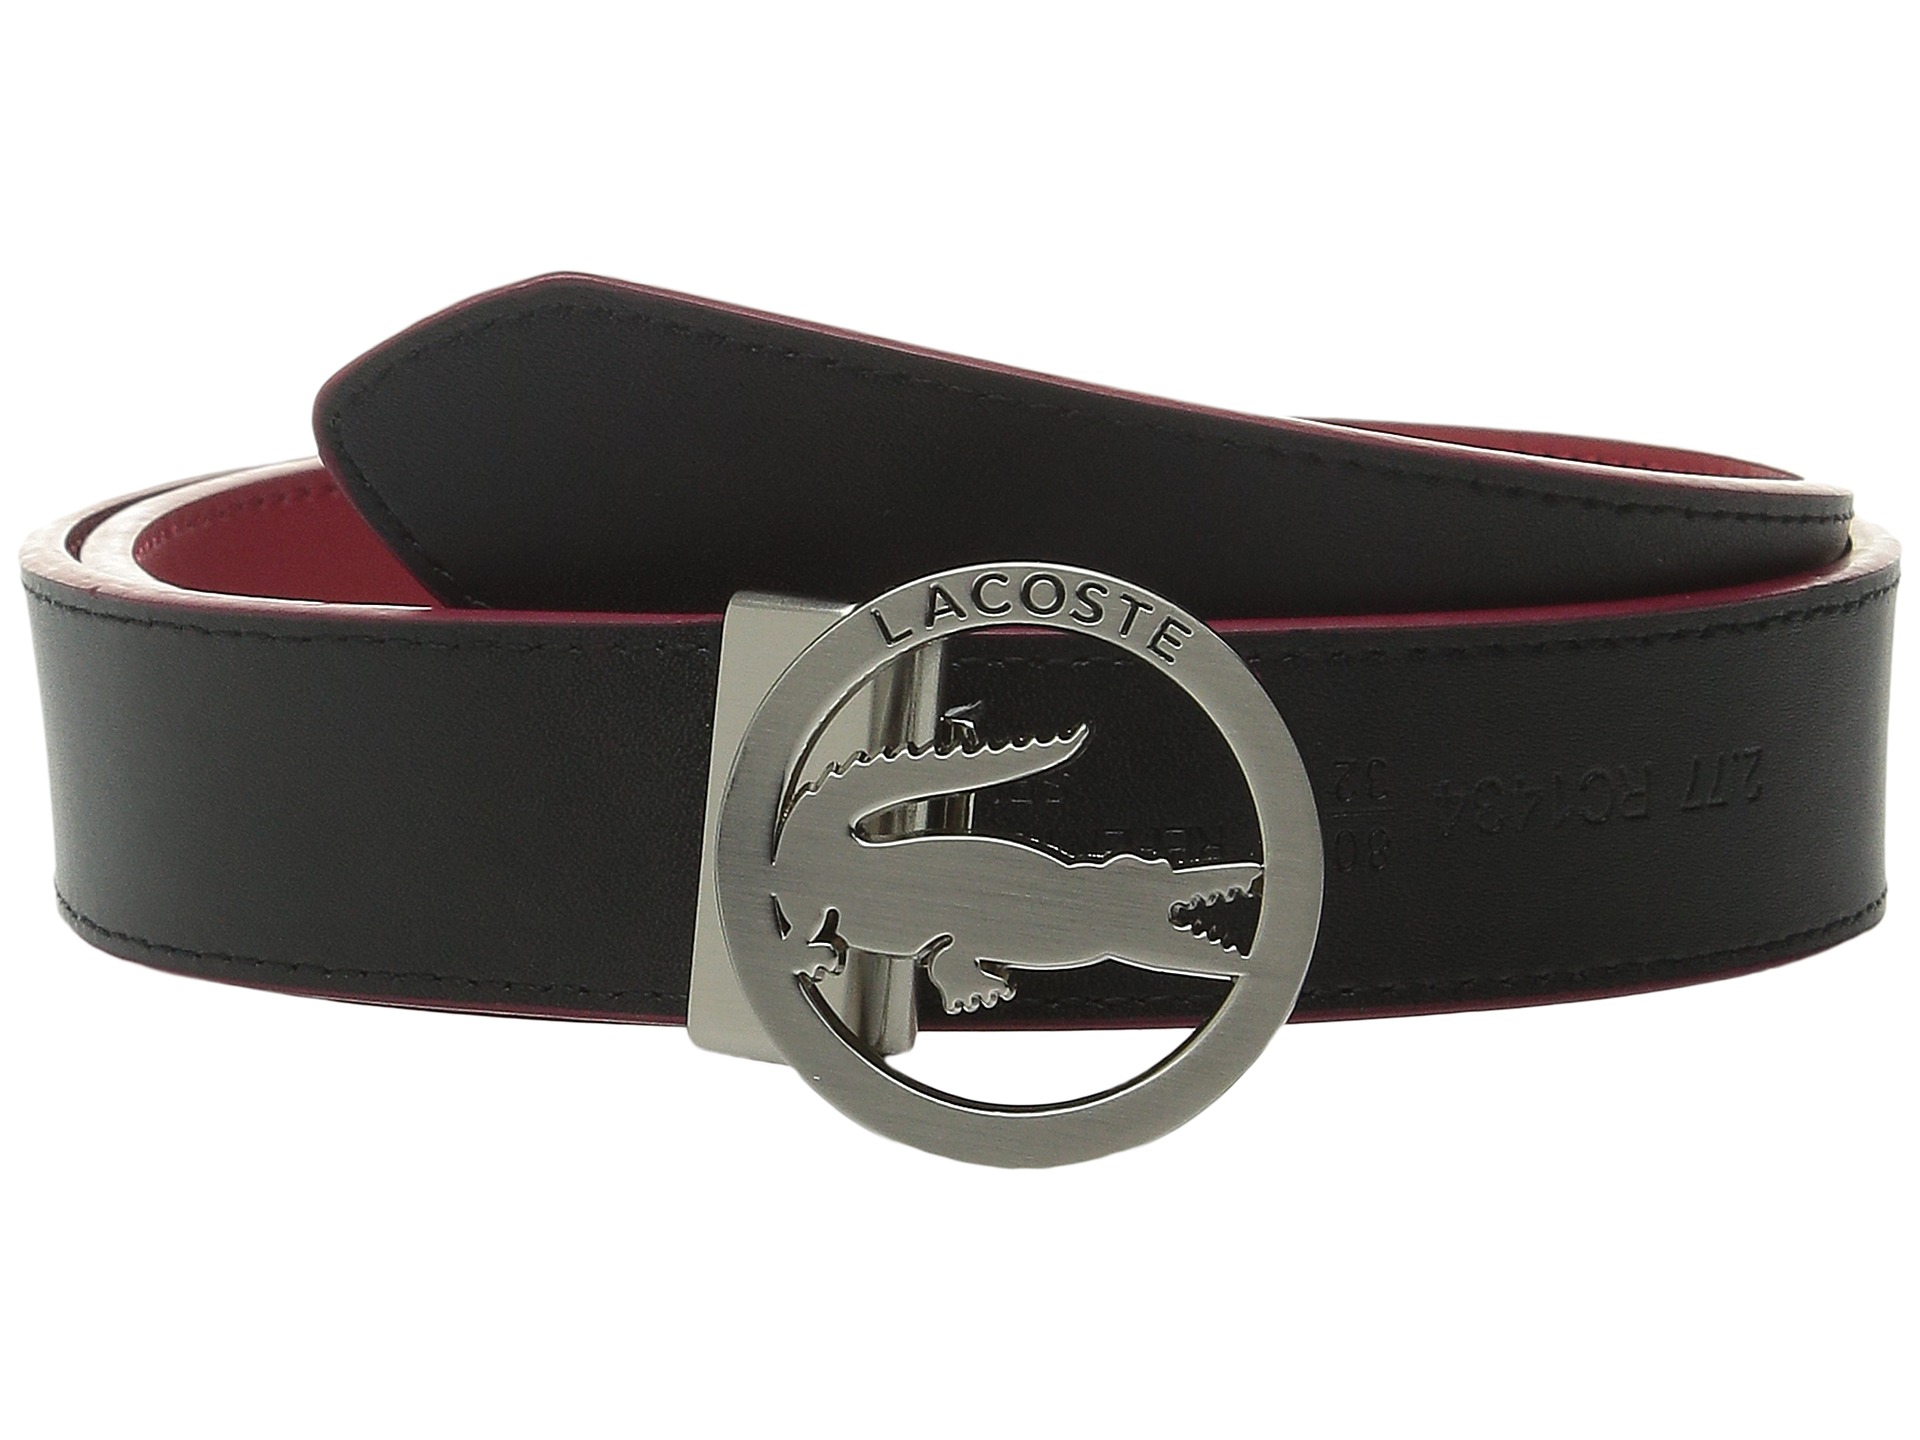 Lacoste Men's Reversible Leather Belt With Engraved Logo Buckle ...